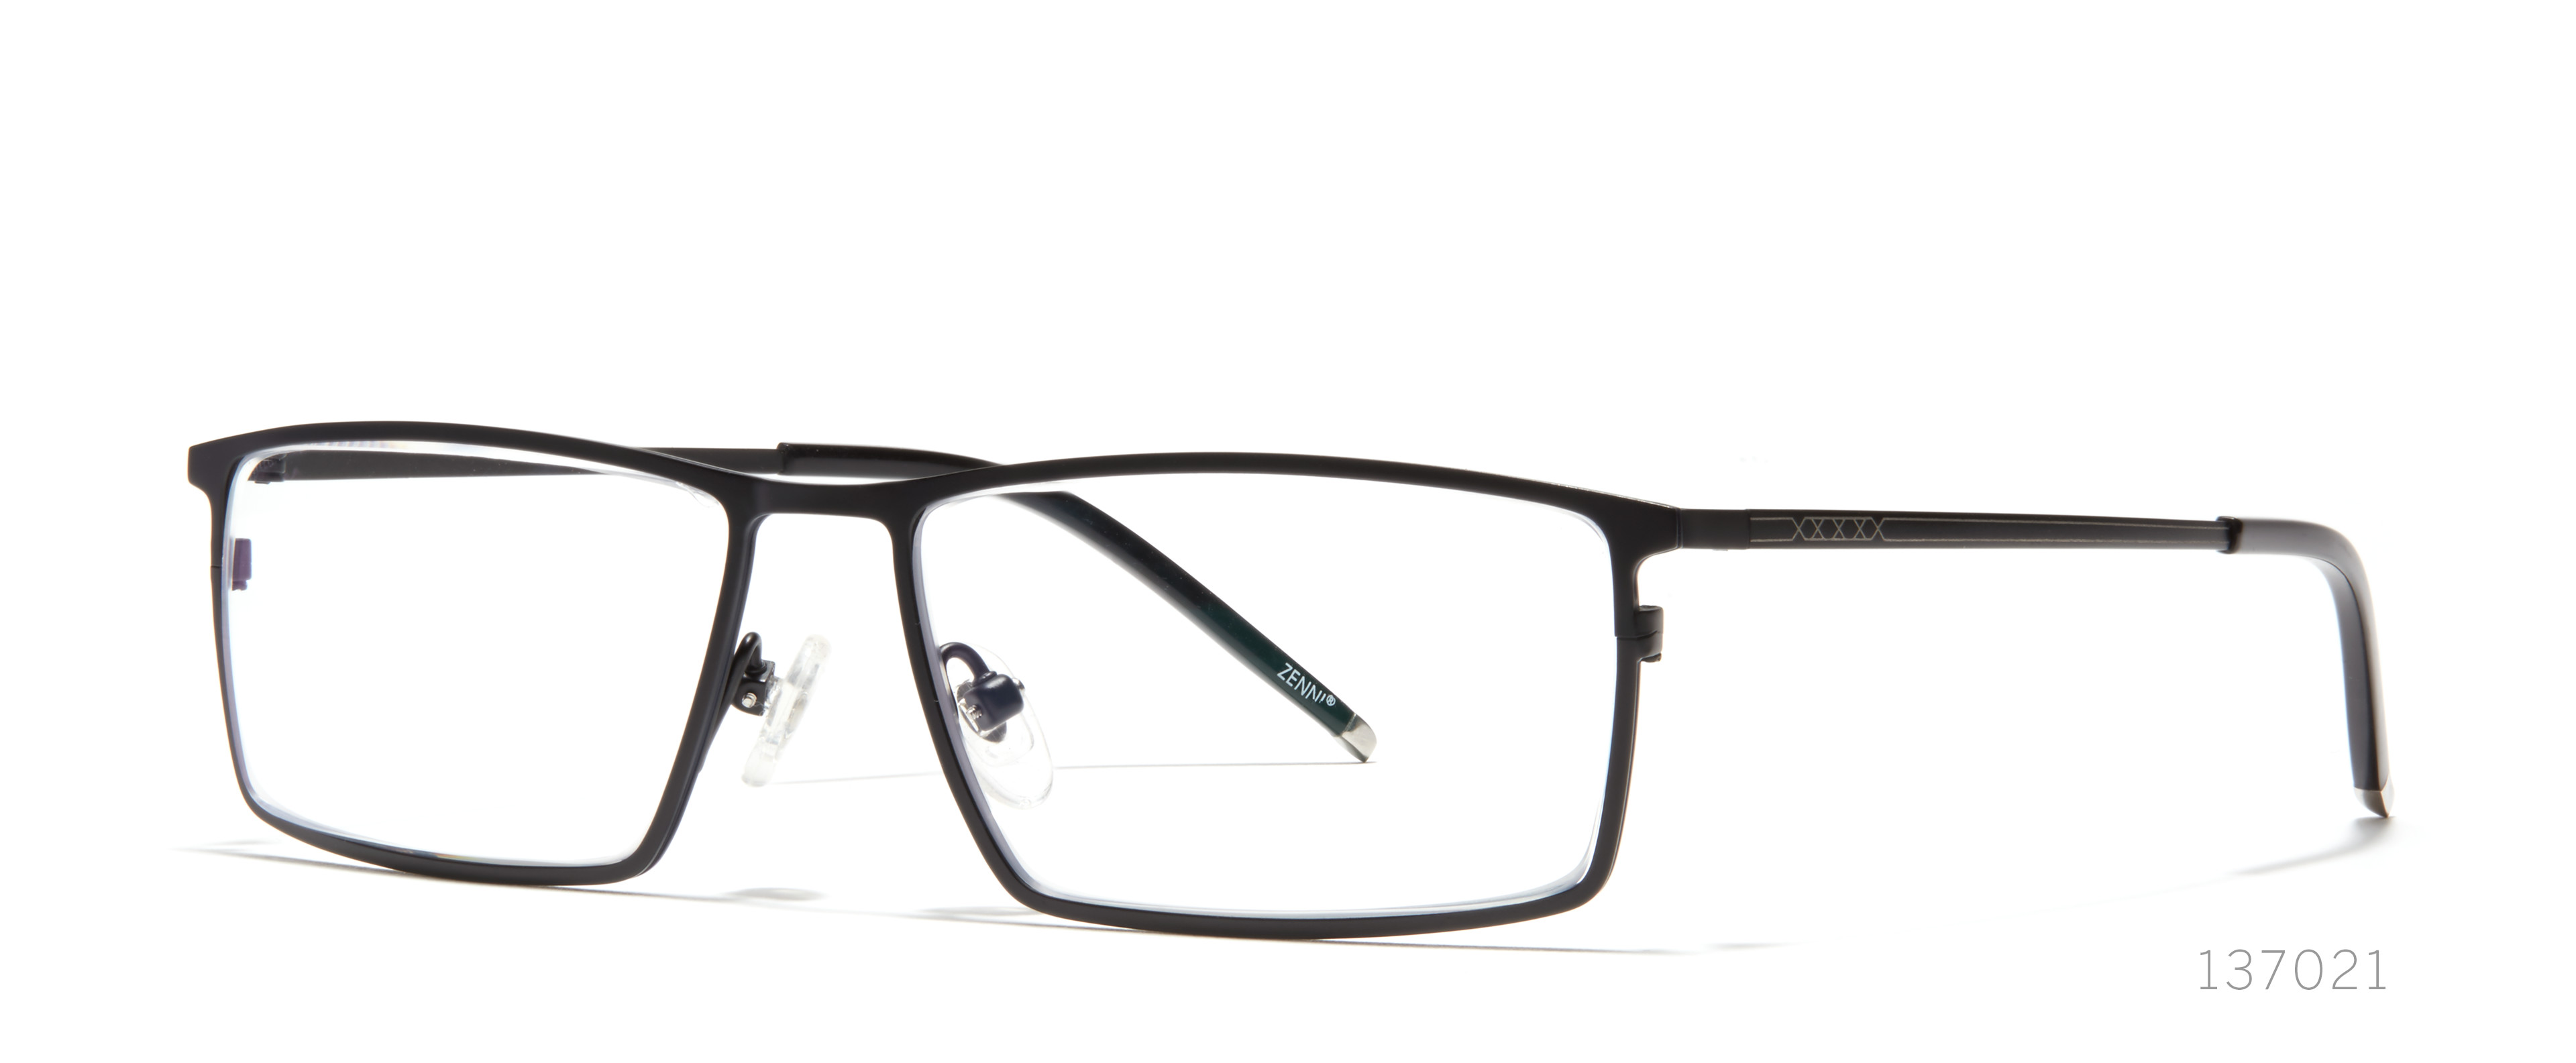 177677d4236 rectangle glasses for round face